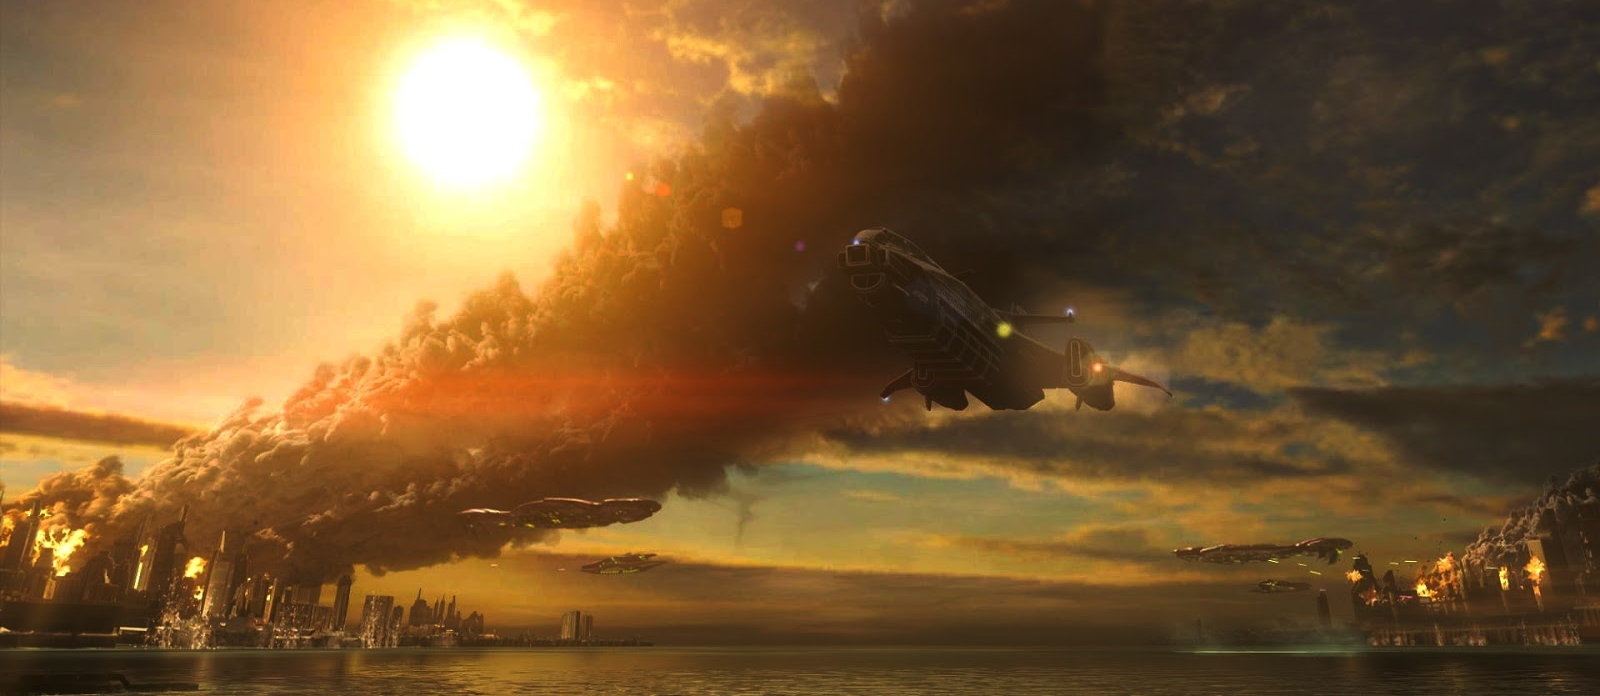 BATTLE OF TRIBUTE - Tribute's capital city Casbah burns from Covenant attack as civilians attempt to evacuate the planet, August 2552.